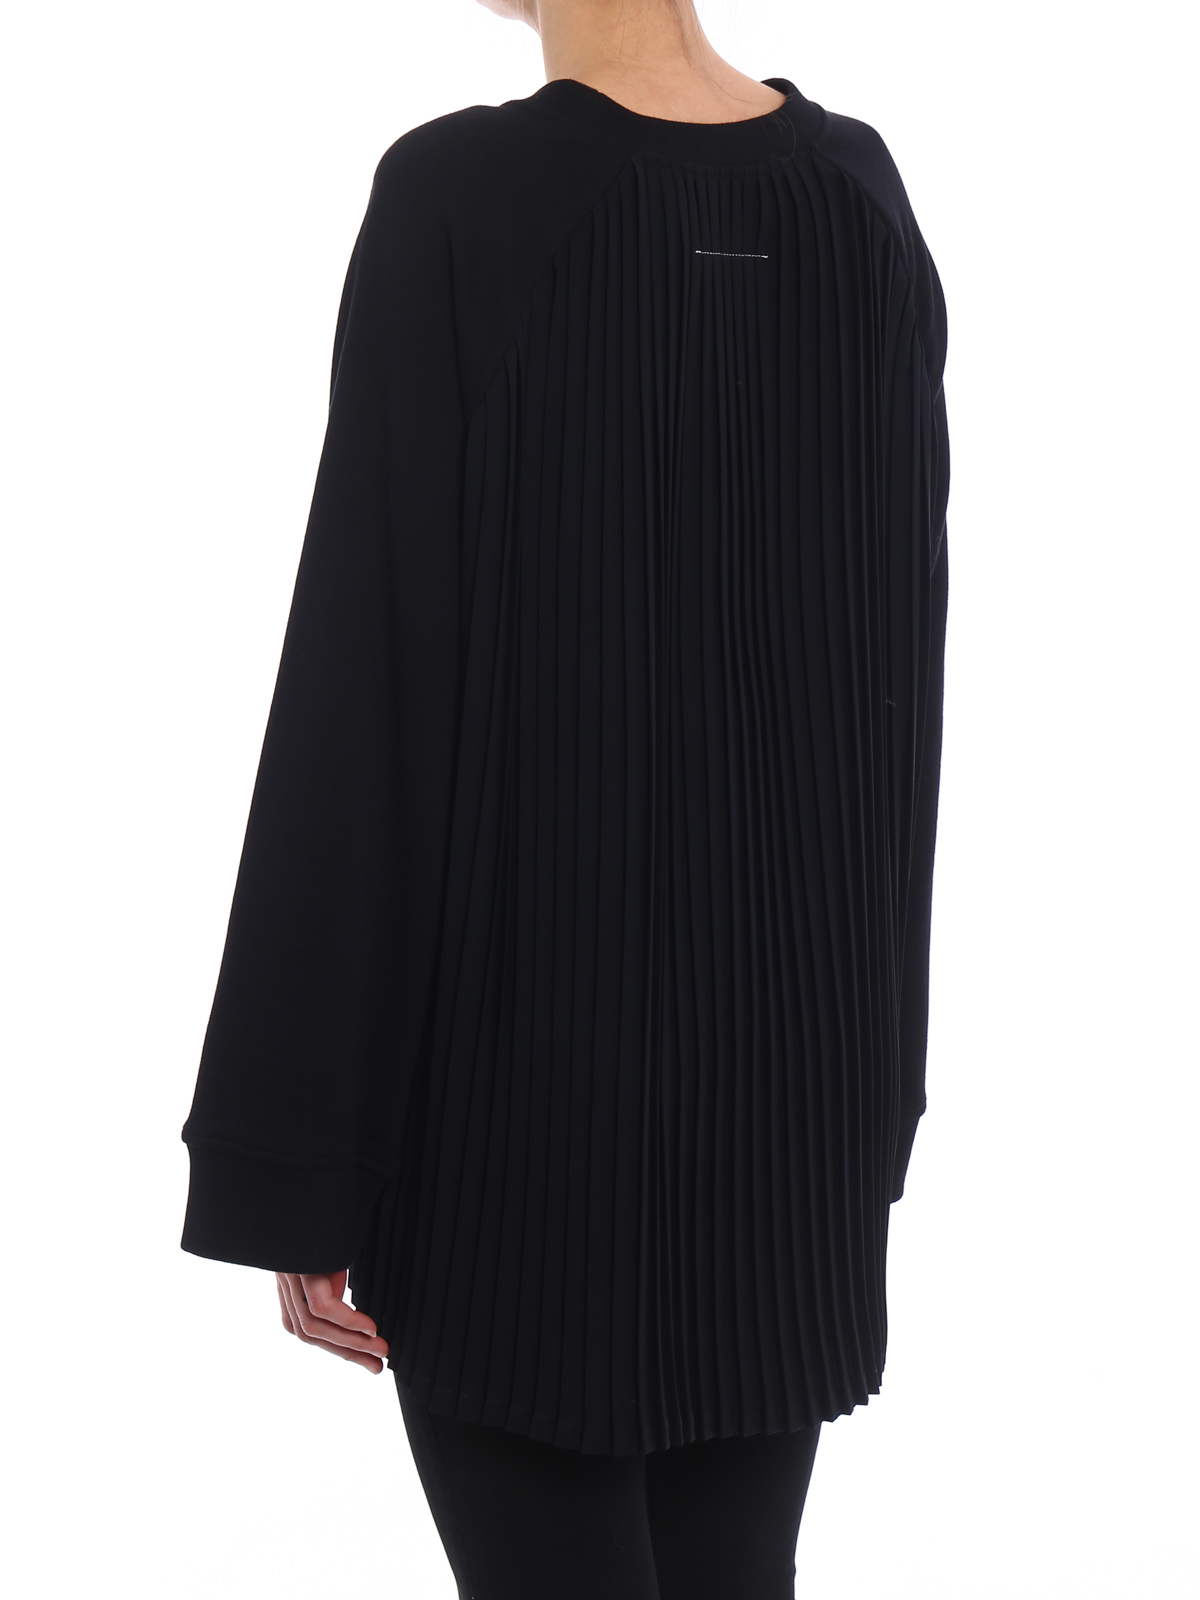 Mm6 Maison Margiela pleated back sweatshirt Buy Cheap Amazing Price Brand New Unisex Cheap Price Outlet Great Deals Cheap Price Outlet Get To Buy For Sale PosarXR